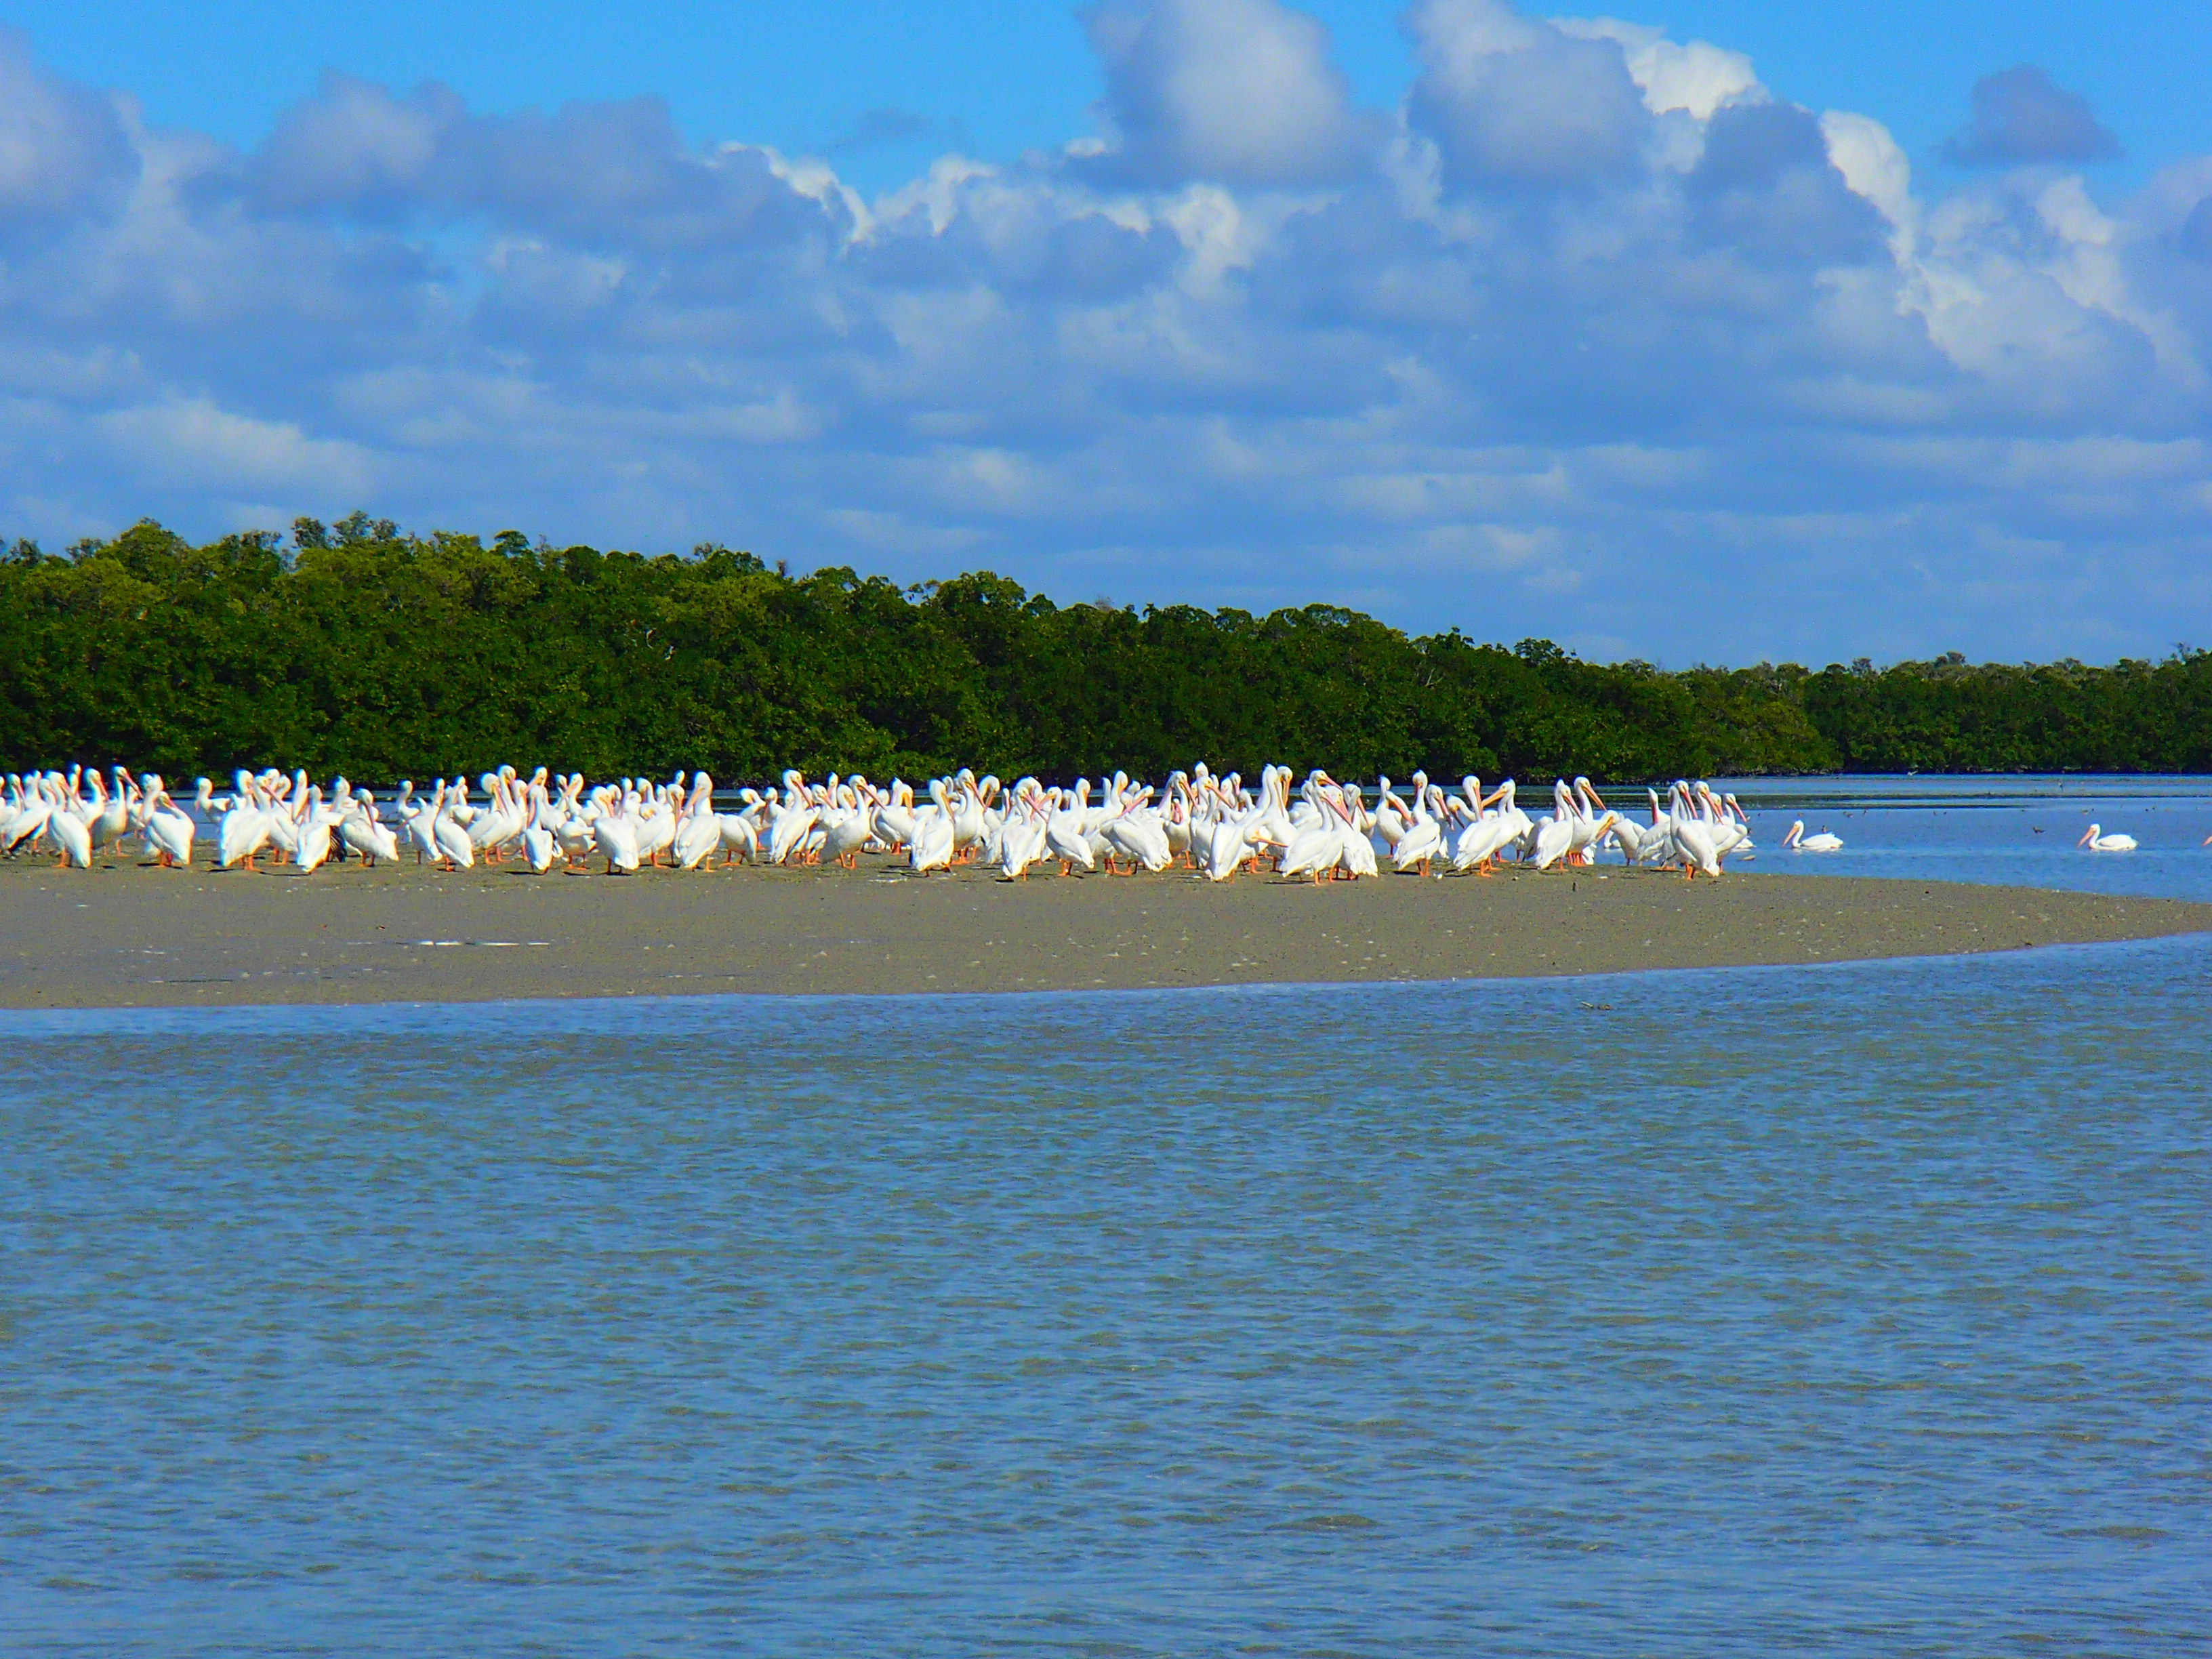 Hundred of white pelicans in the Everglades